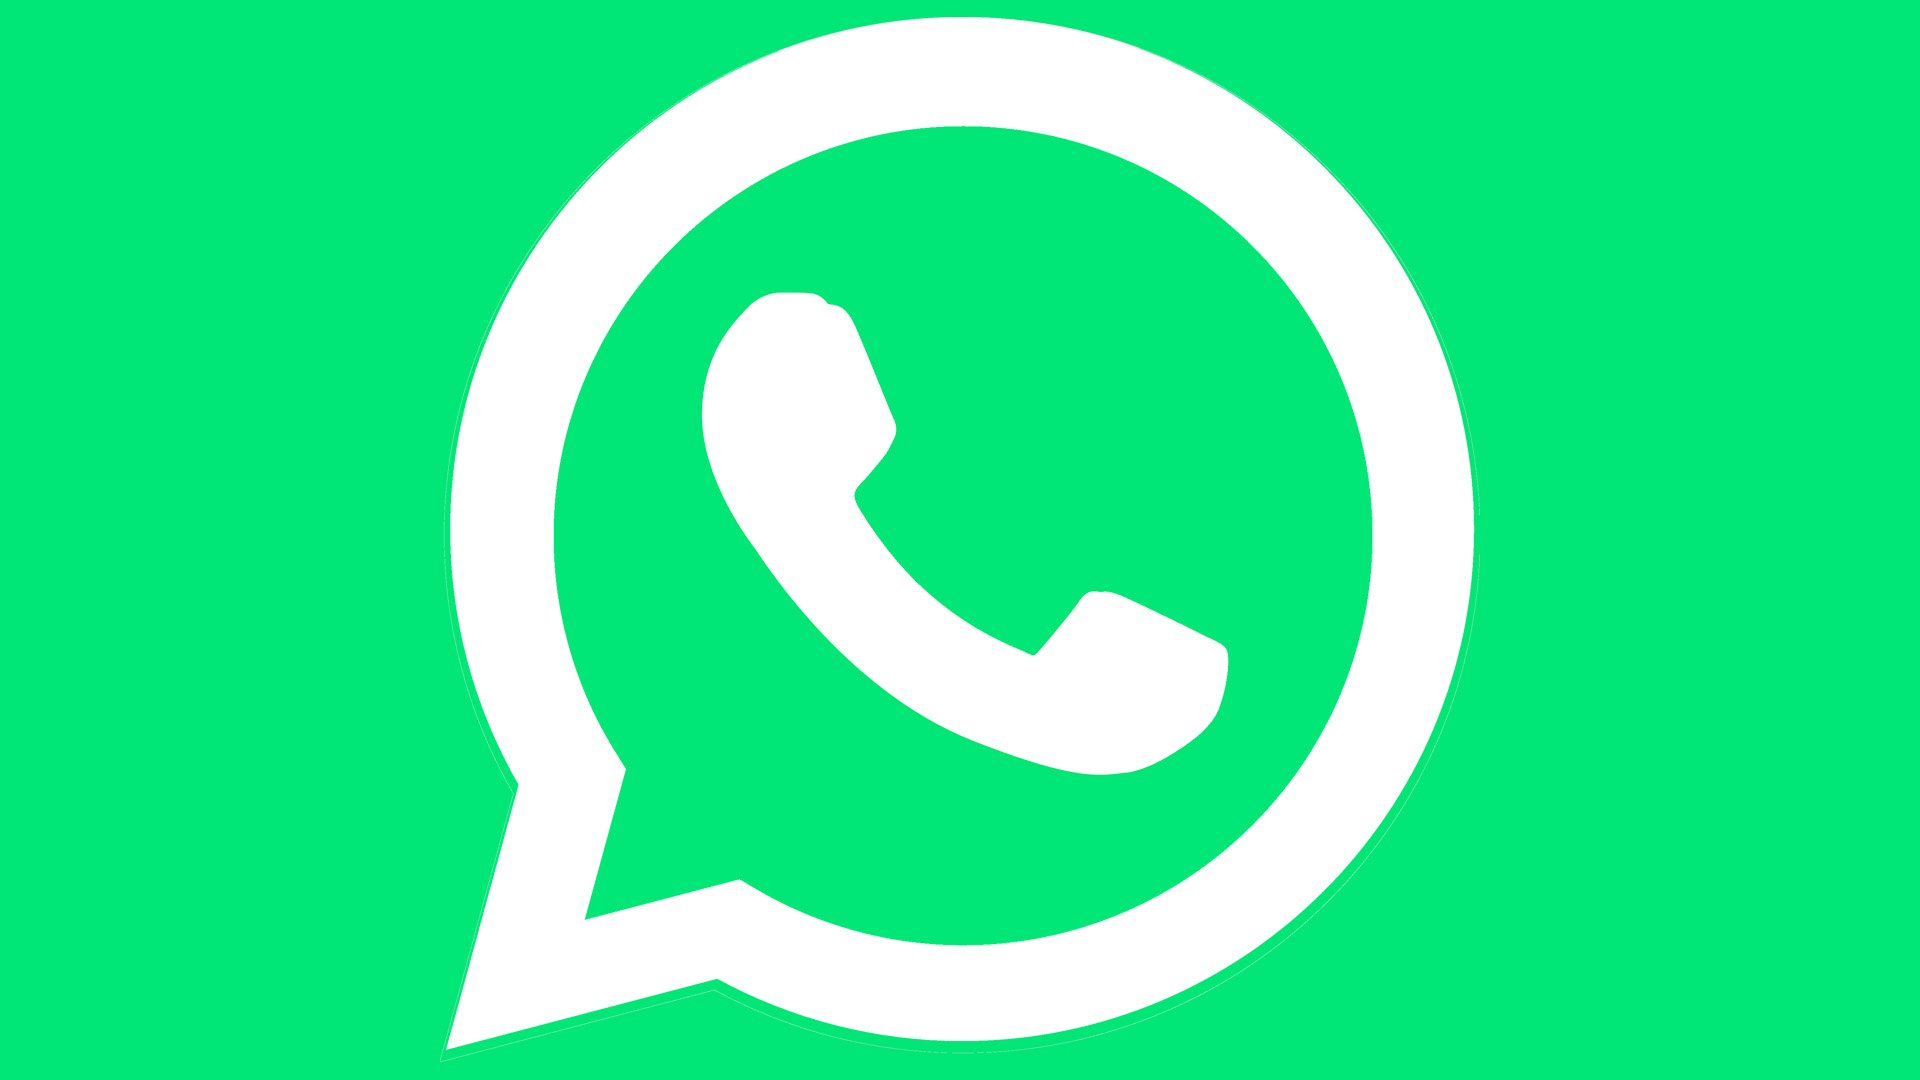 WhatsApp Logo, symbol meaning, History and Evolution